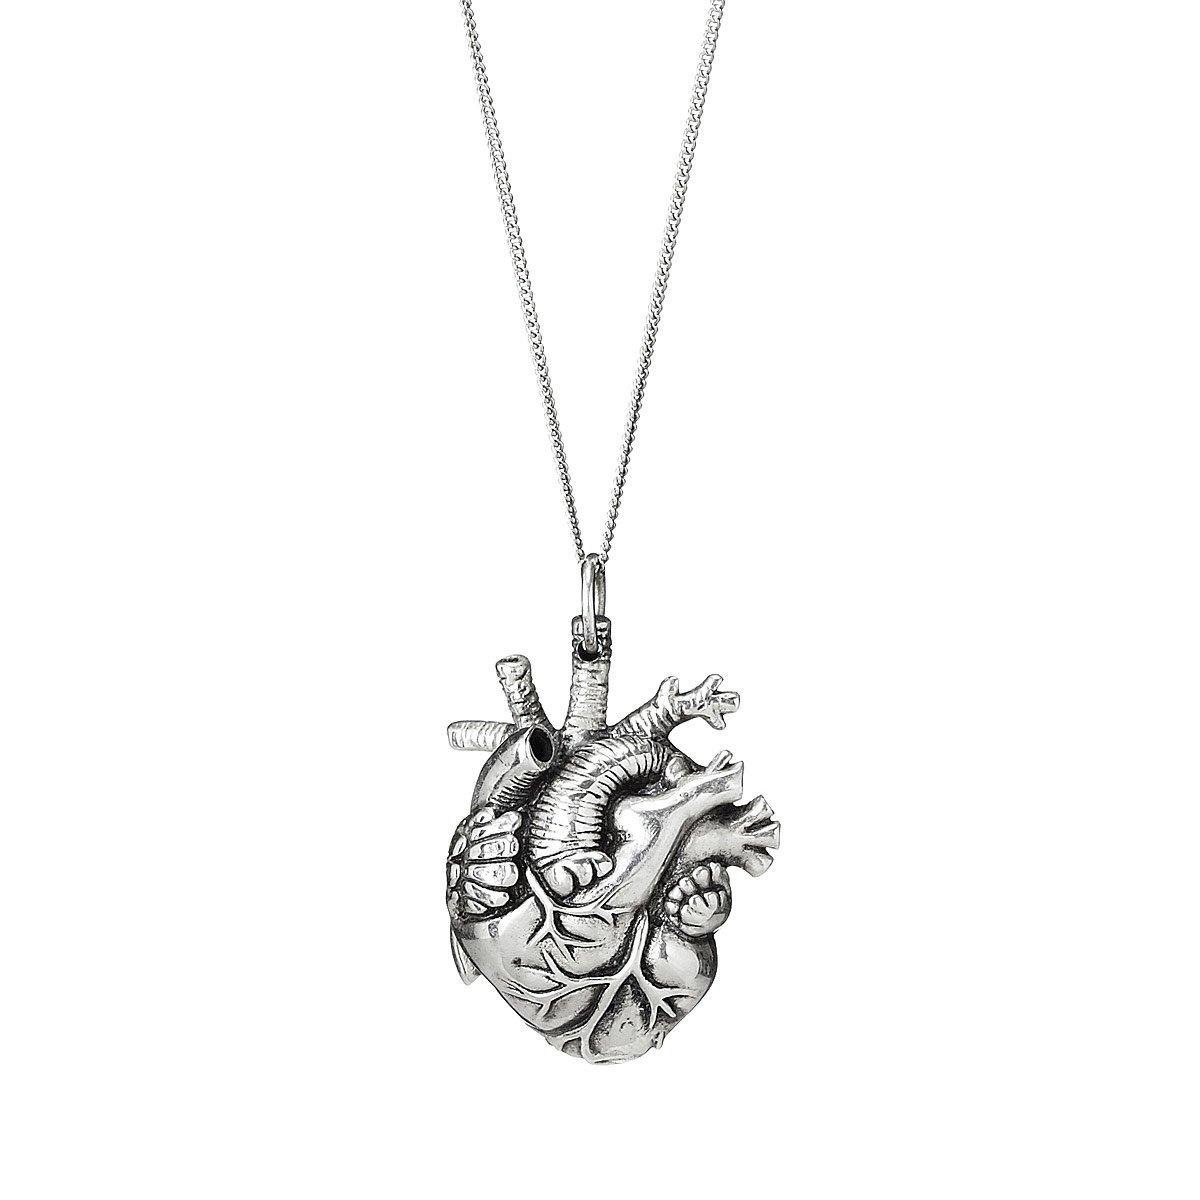 Anatomical heart pendant heart necklace uncommongoods anatomical heart pendant 2 thumbnail aloadofball Image collections